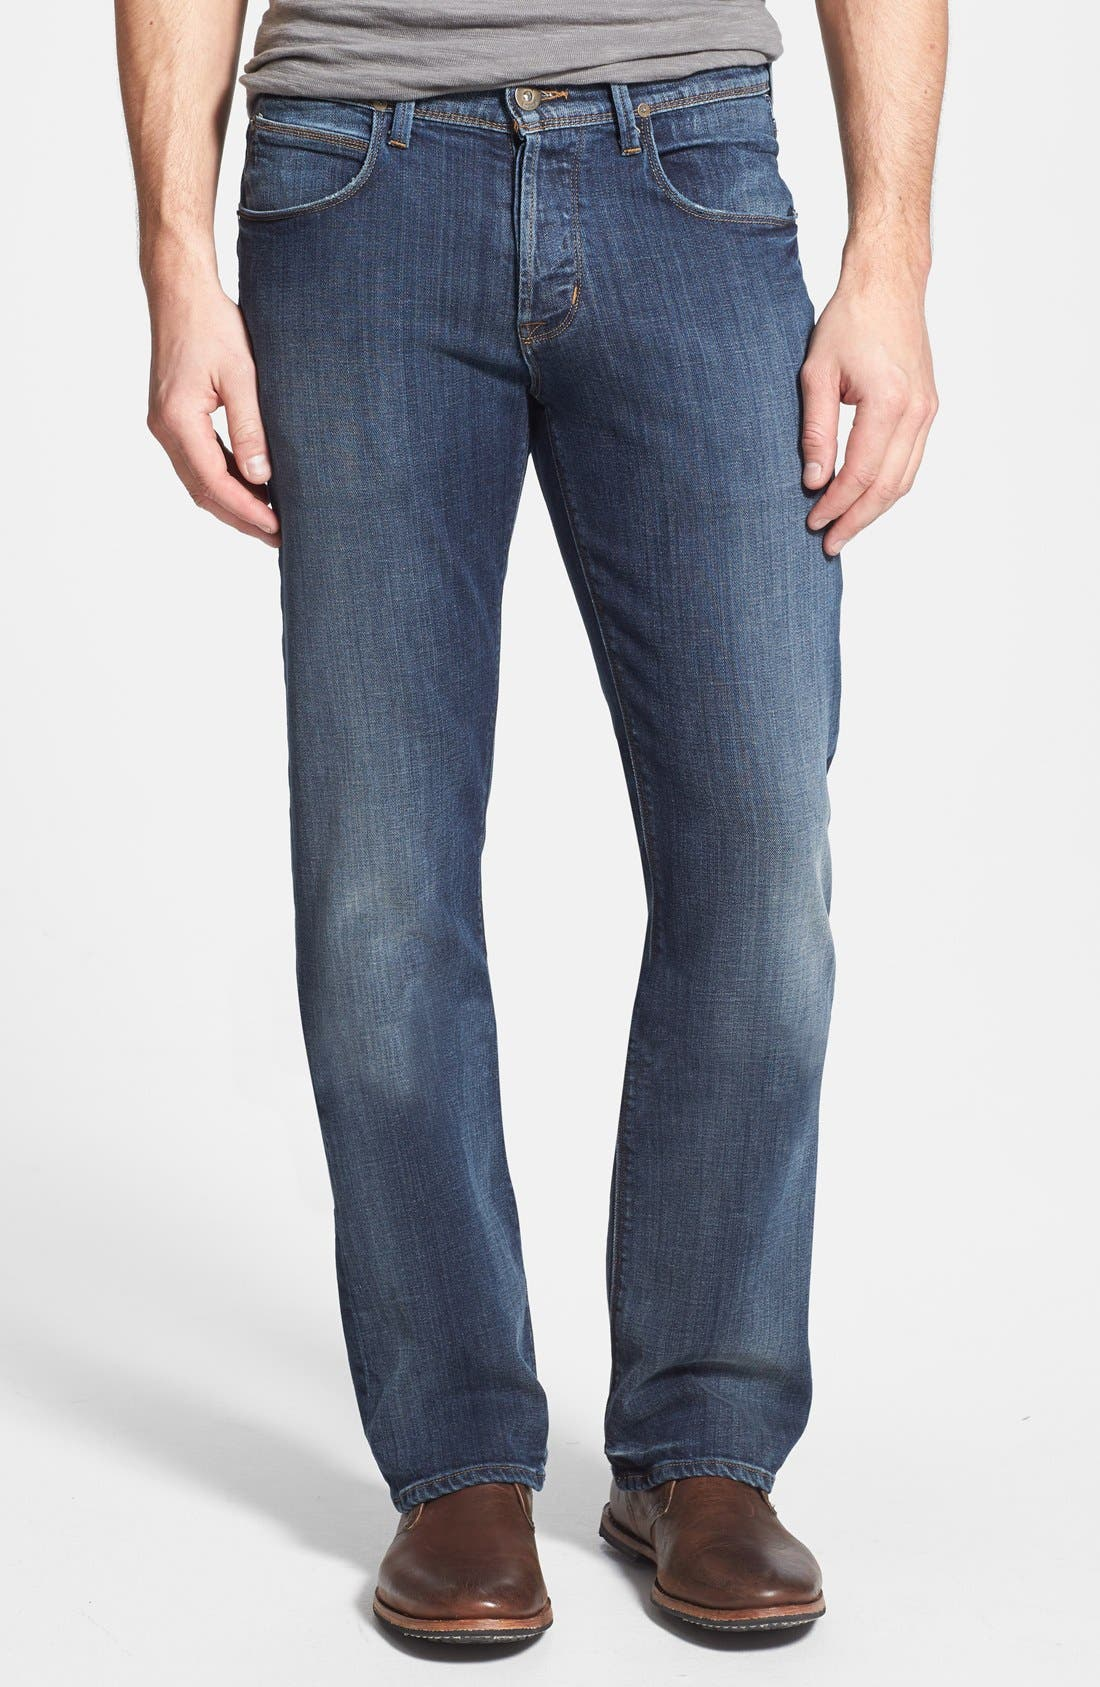 Alternate Image 1 Selected - Hudson Jeans 'Clifton' Bootcut Jeans (Down South)